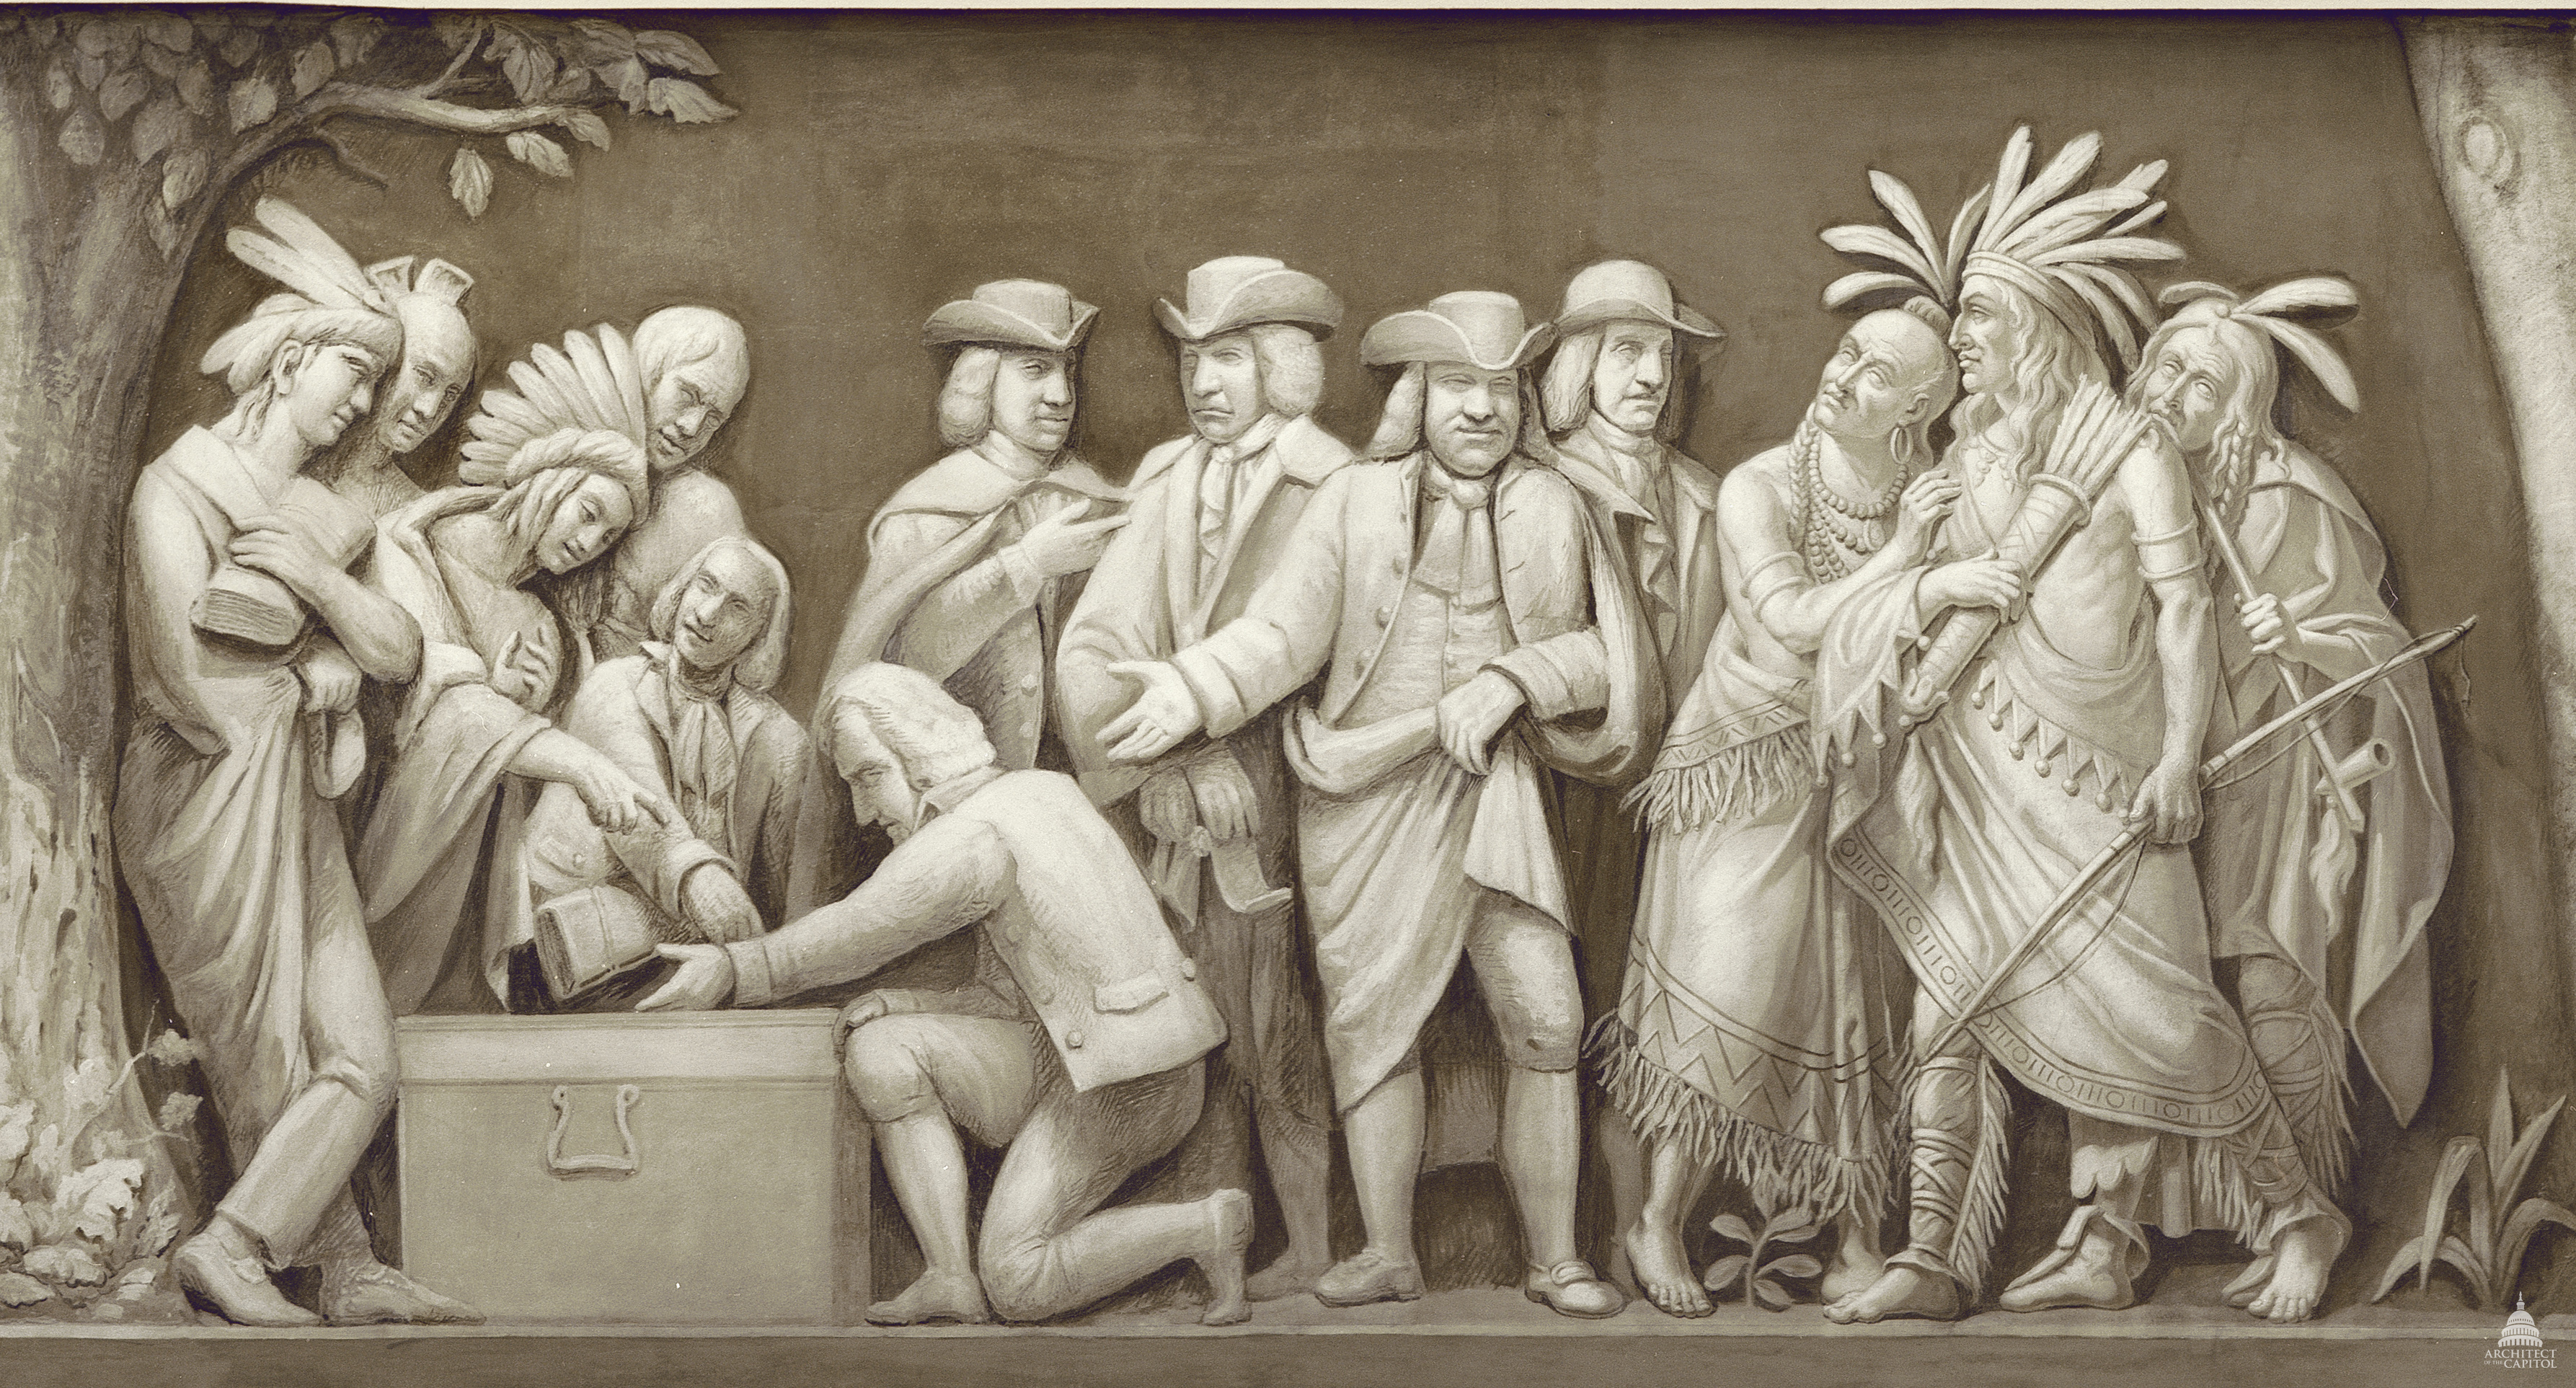 Indians: William Penn And The Indians